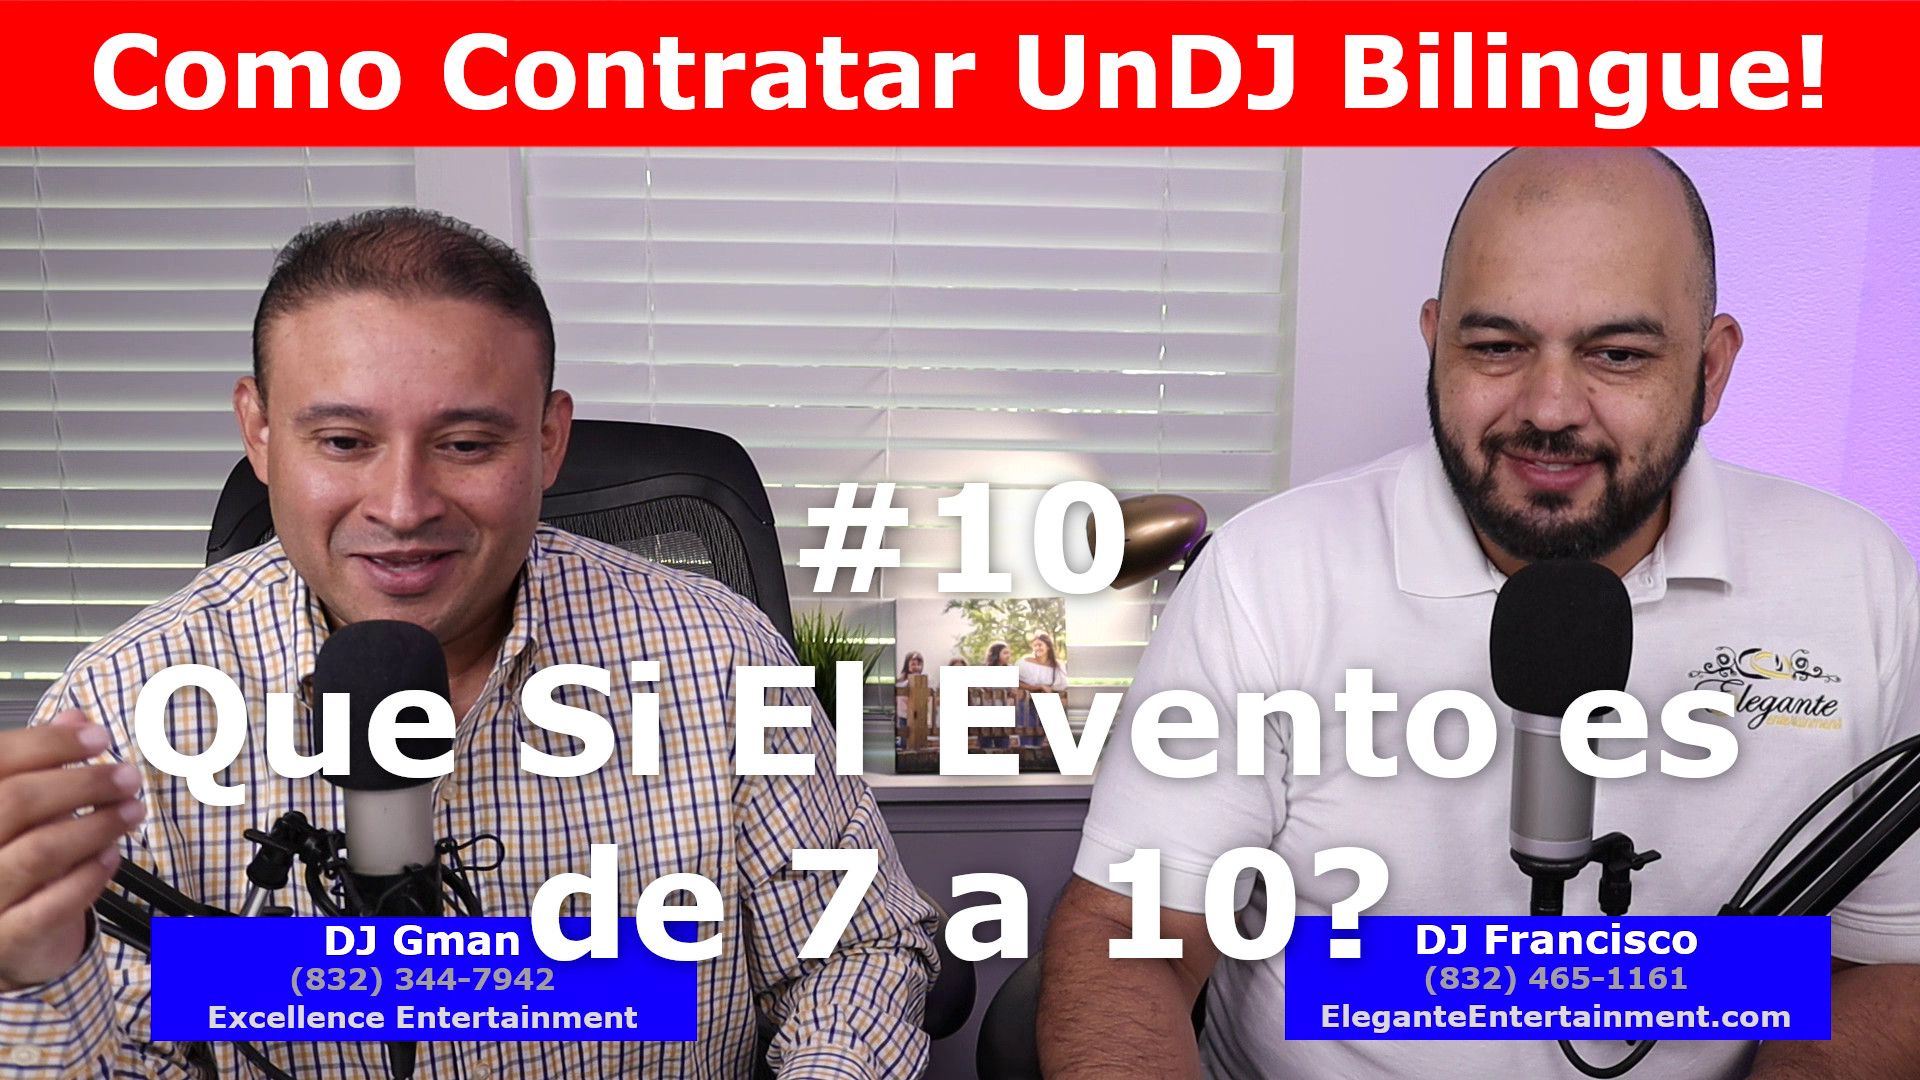 DJ in Houston | #10 Events from 7 to 10